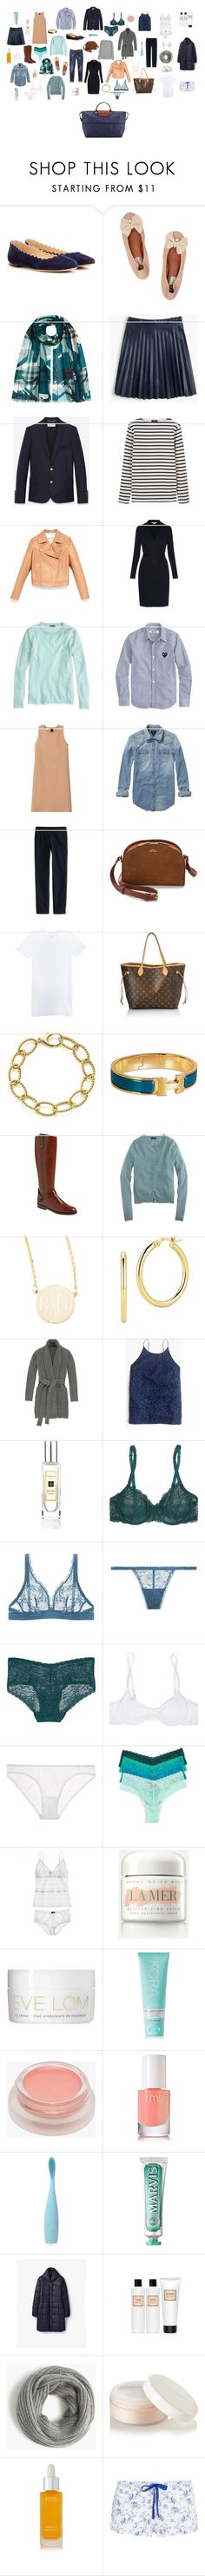 Wardrobe Capsule by thesimplyluxuriouslife on Polyvore featuring мода, Diane Von Furstenberg, Marni, J.Crew, Scotch & Soda, Yves Saint Laurent, Cosabella, Heidi Klum, Lanvin and Chloé